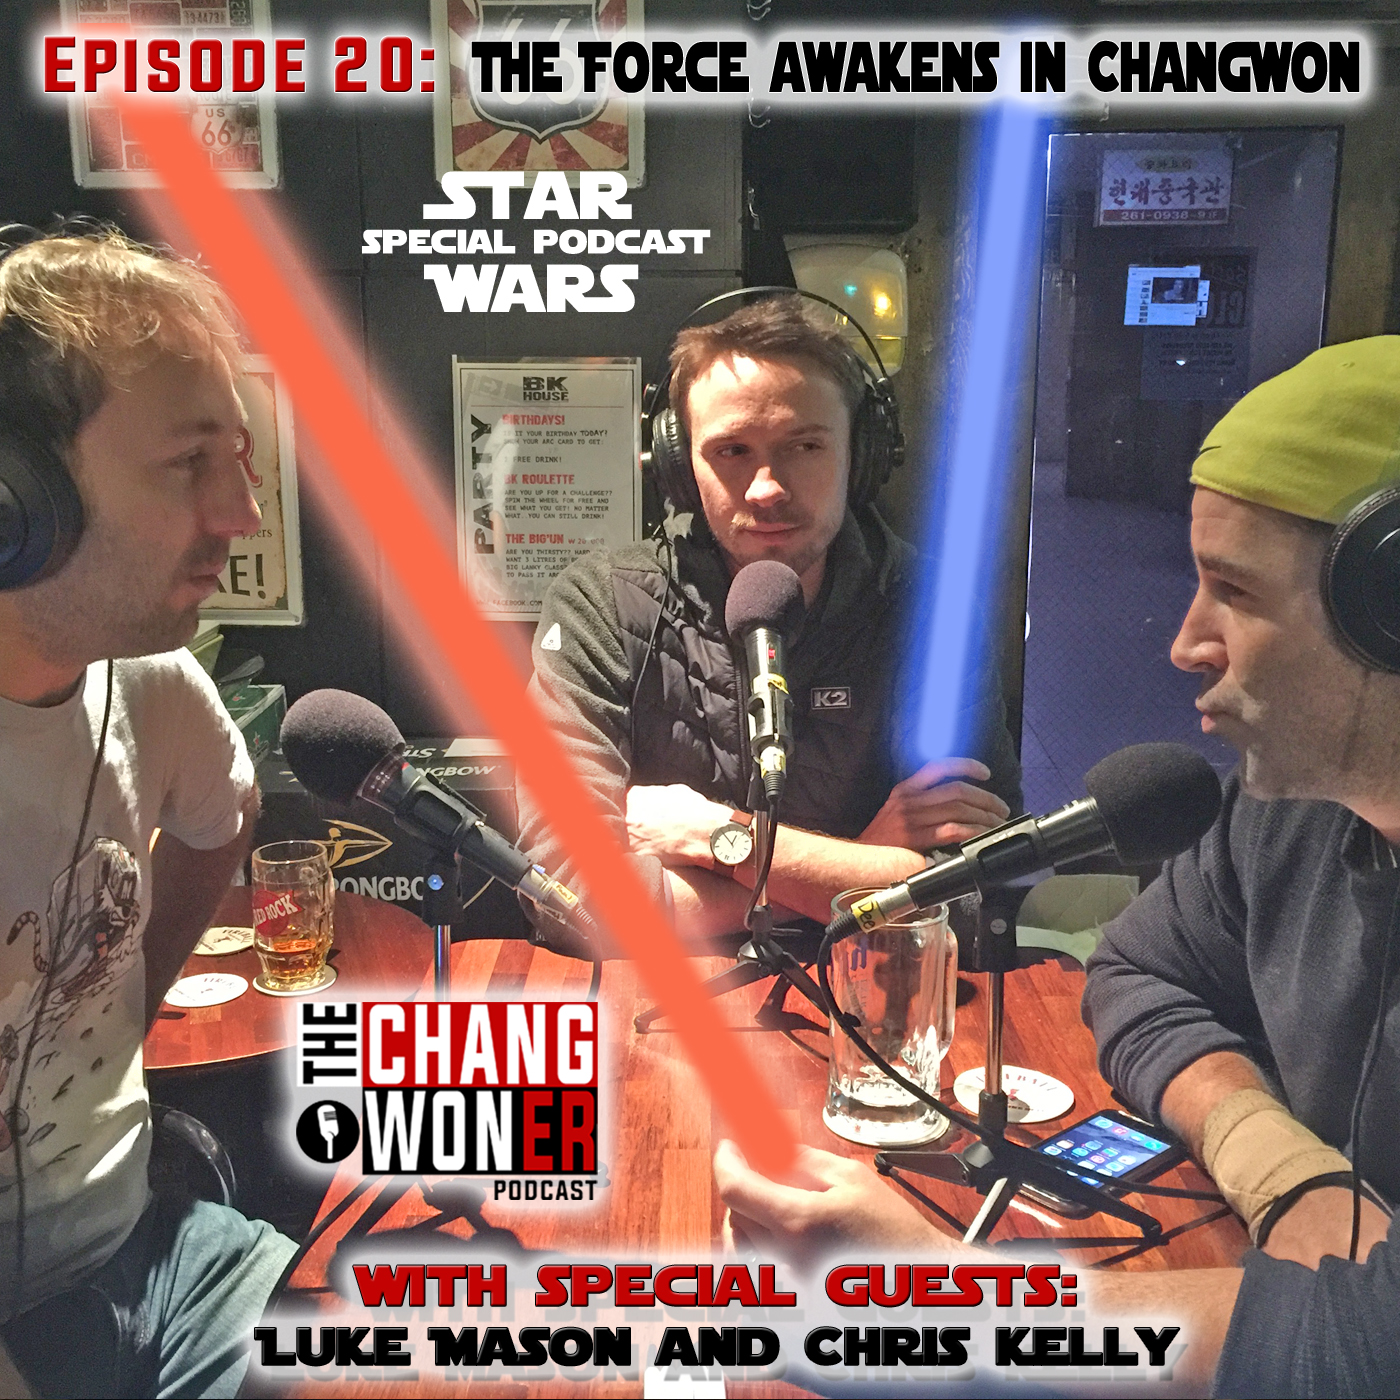 Artwork for Star Wars in South Korea. The Force Awakens in Changwon –guests Chris Kelly and Luke Mason (Ep 20)